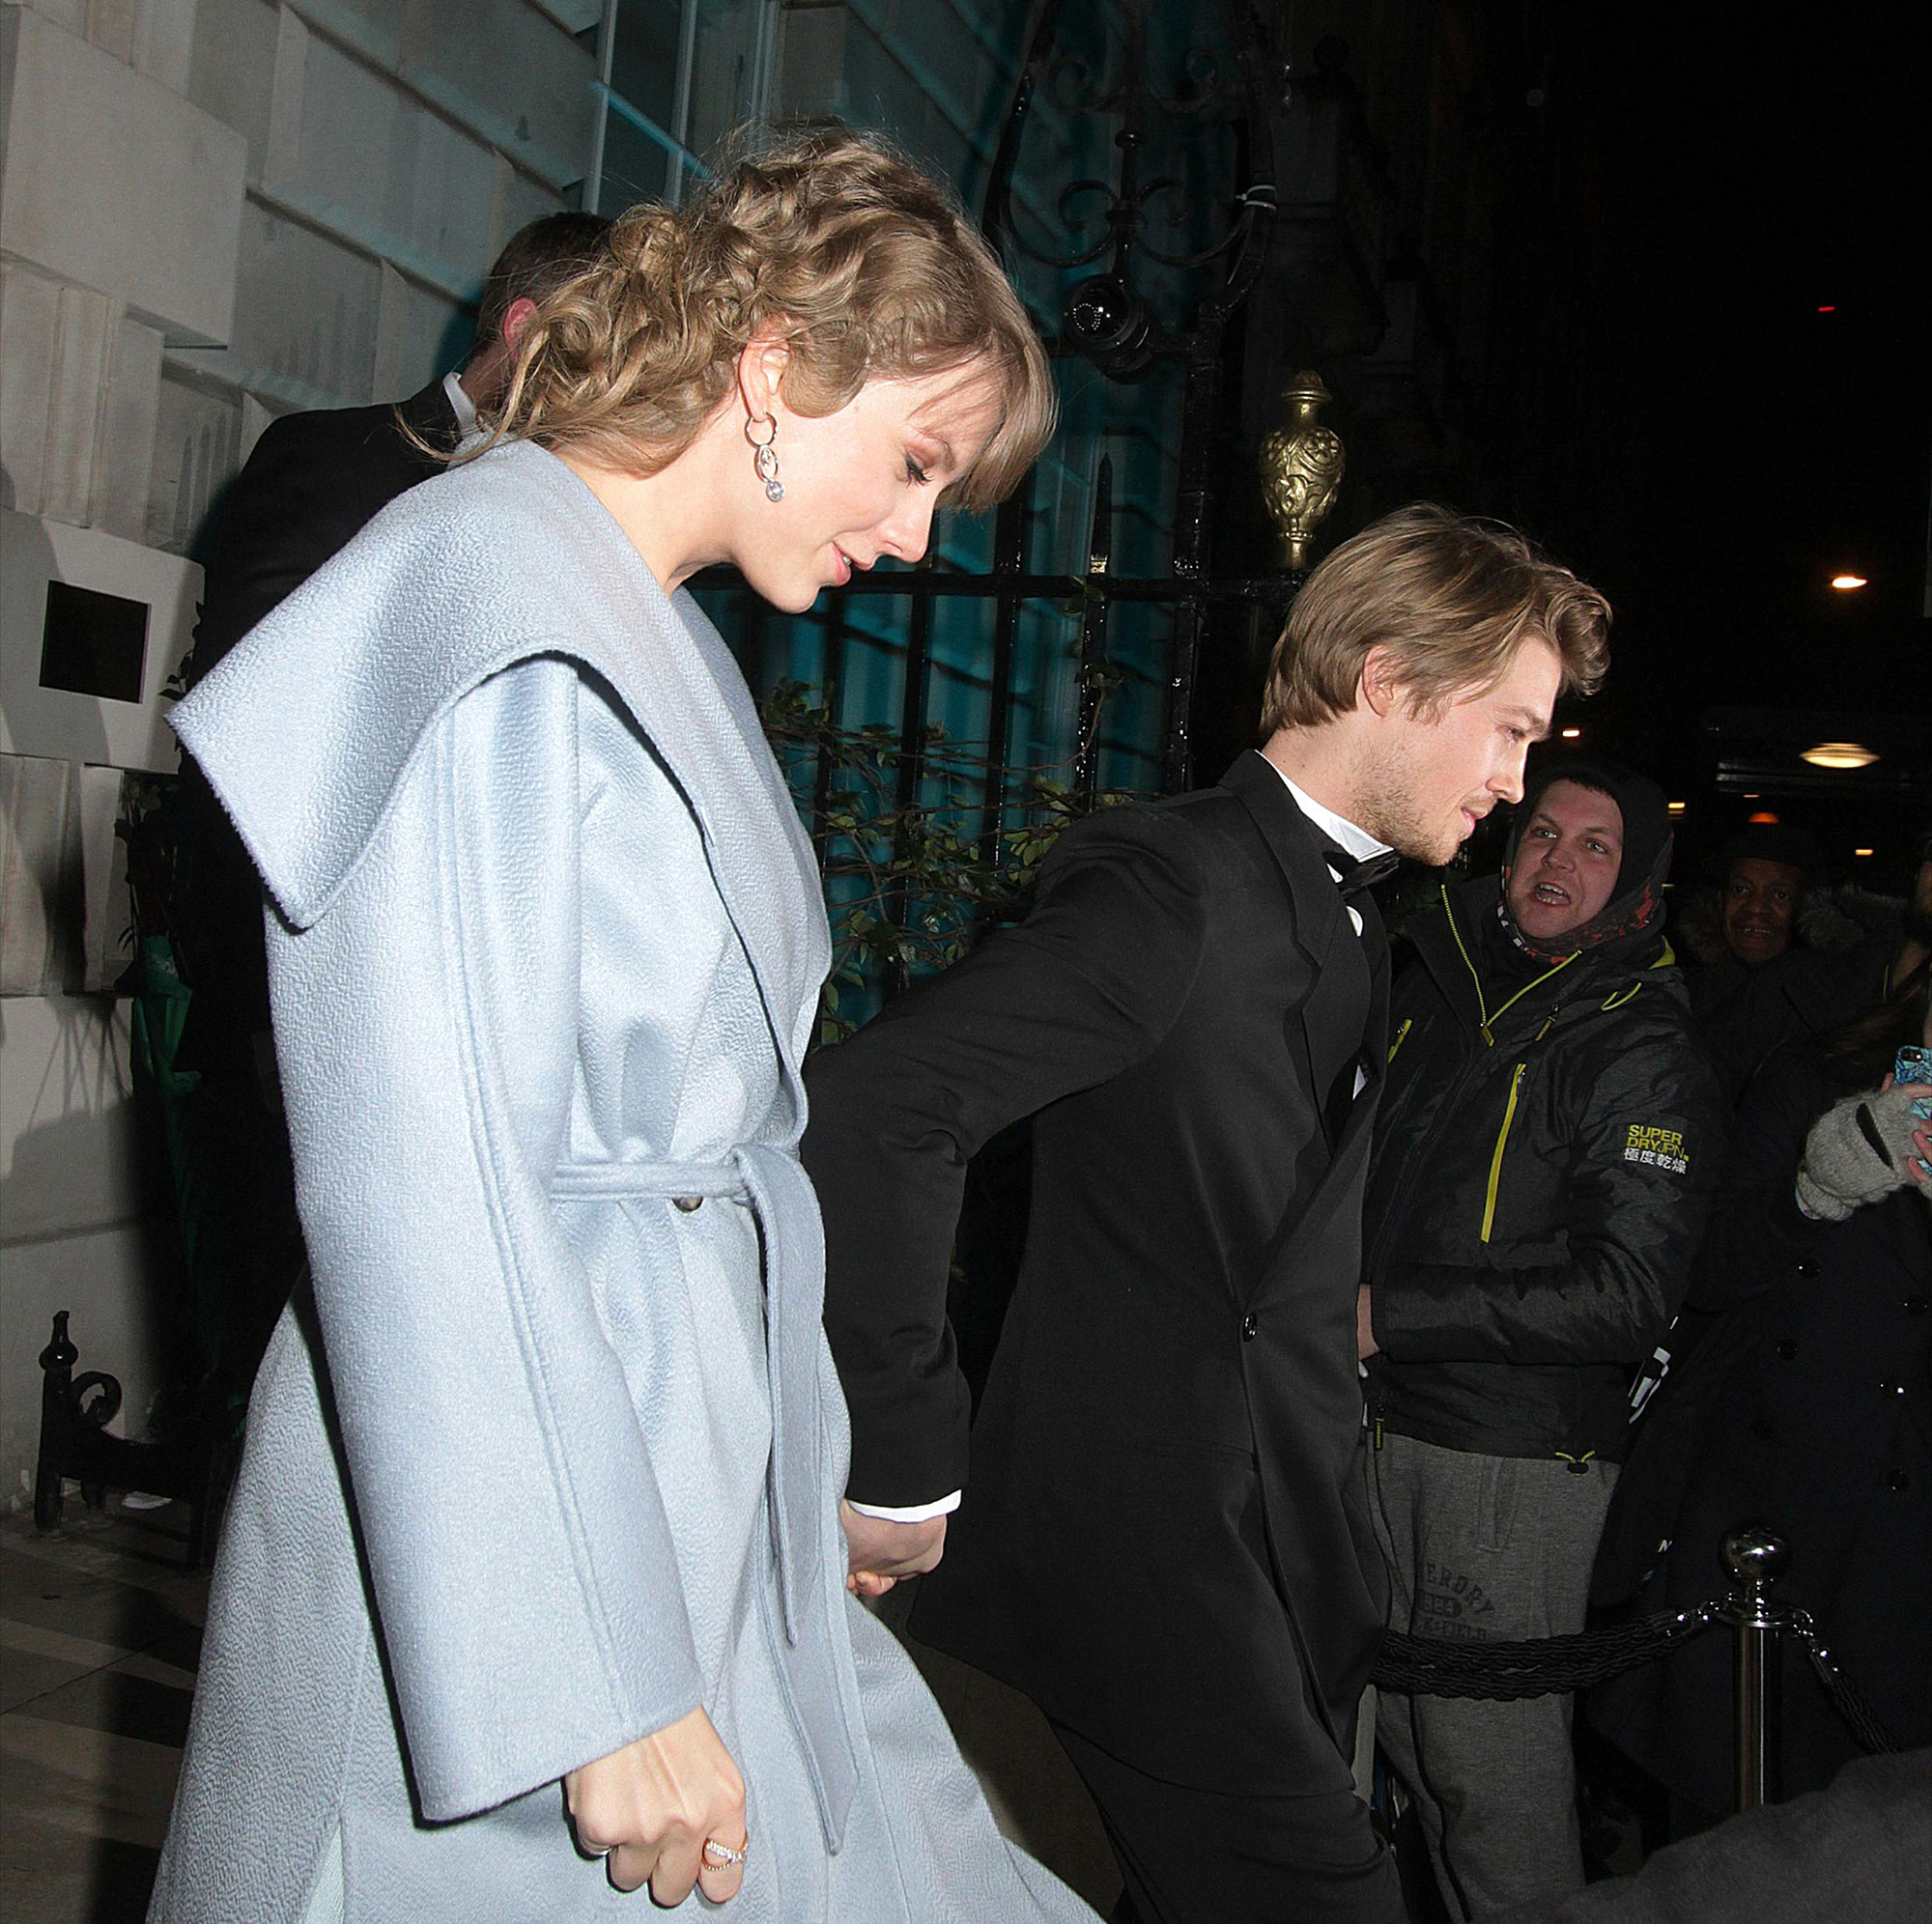 "Taylor Swift and Joe Alwyn: A Timeline of Their 'Gorgeous' Relationship - A video of the couple at Vanity Fair's 2019 Oscars afterparty showed them packing on the PDA, with Alwyn resting his hand on his girlfriend's shoulder and Swift rubbing his back. ""Taylor stayed for a long time. She mingled throughout the party and seemed very happy the whole night,"" an eyewitness told Us exclusively."